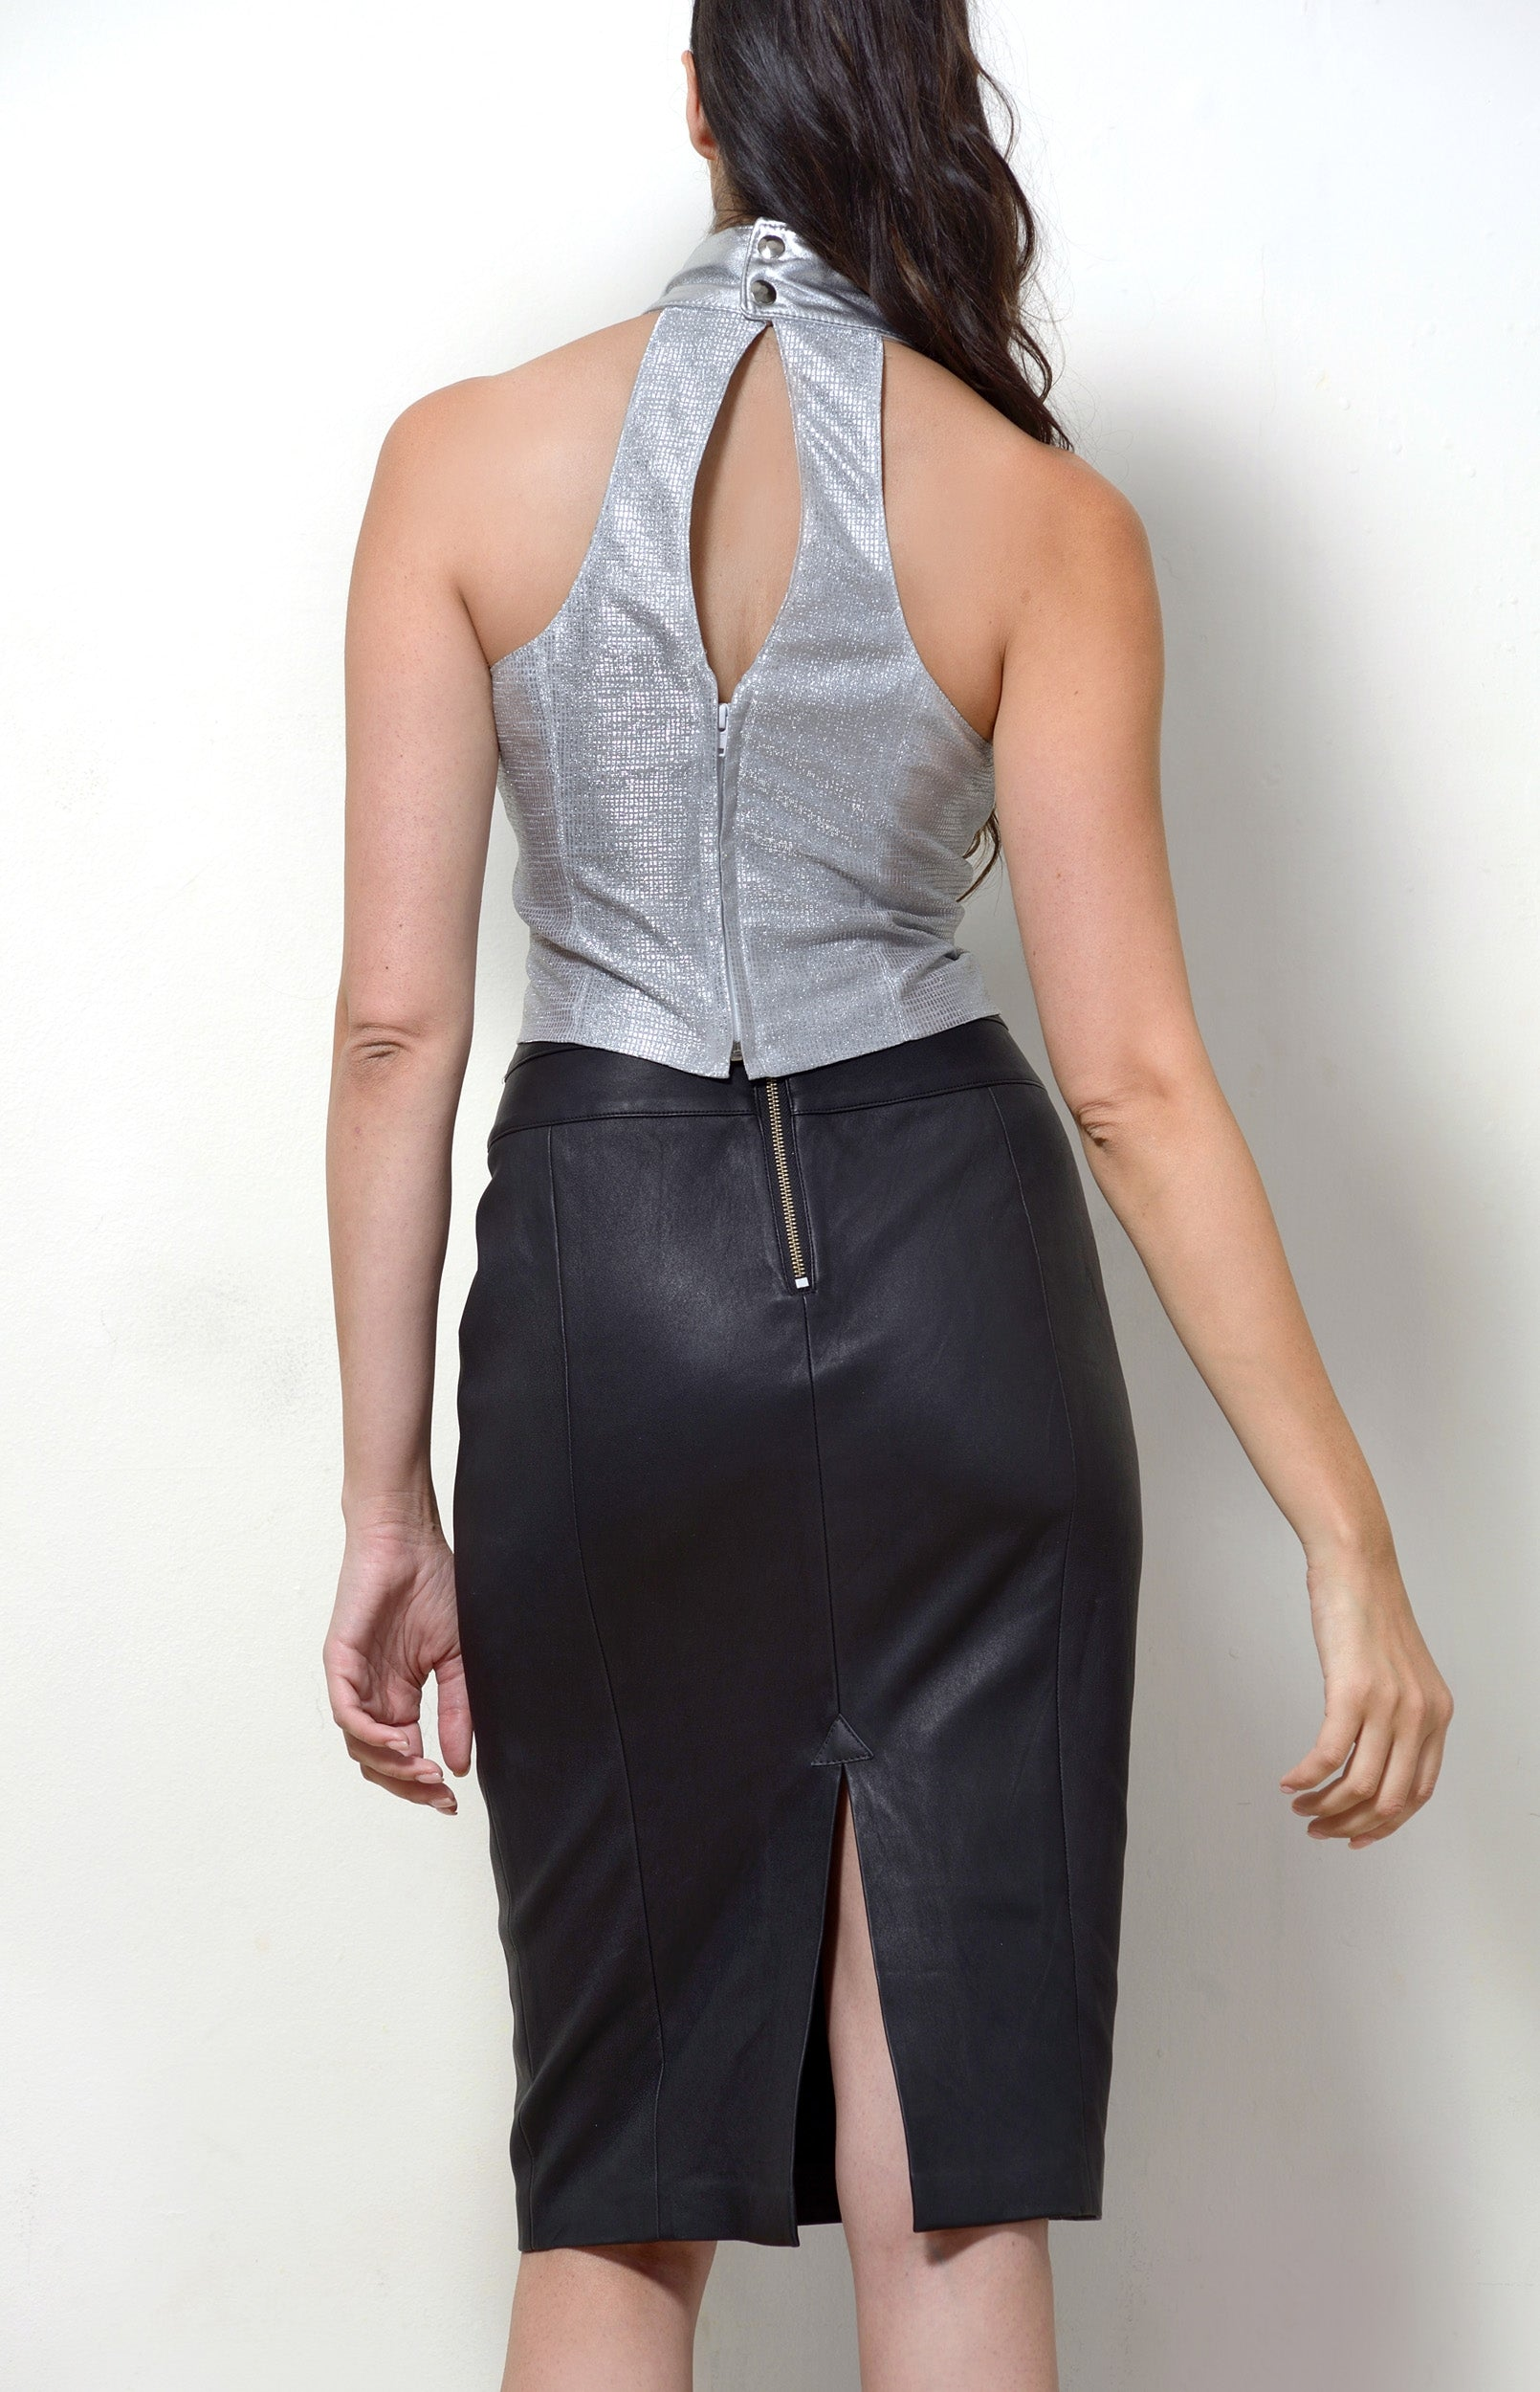 Halter Neck Top, Metallic Silver